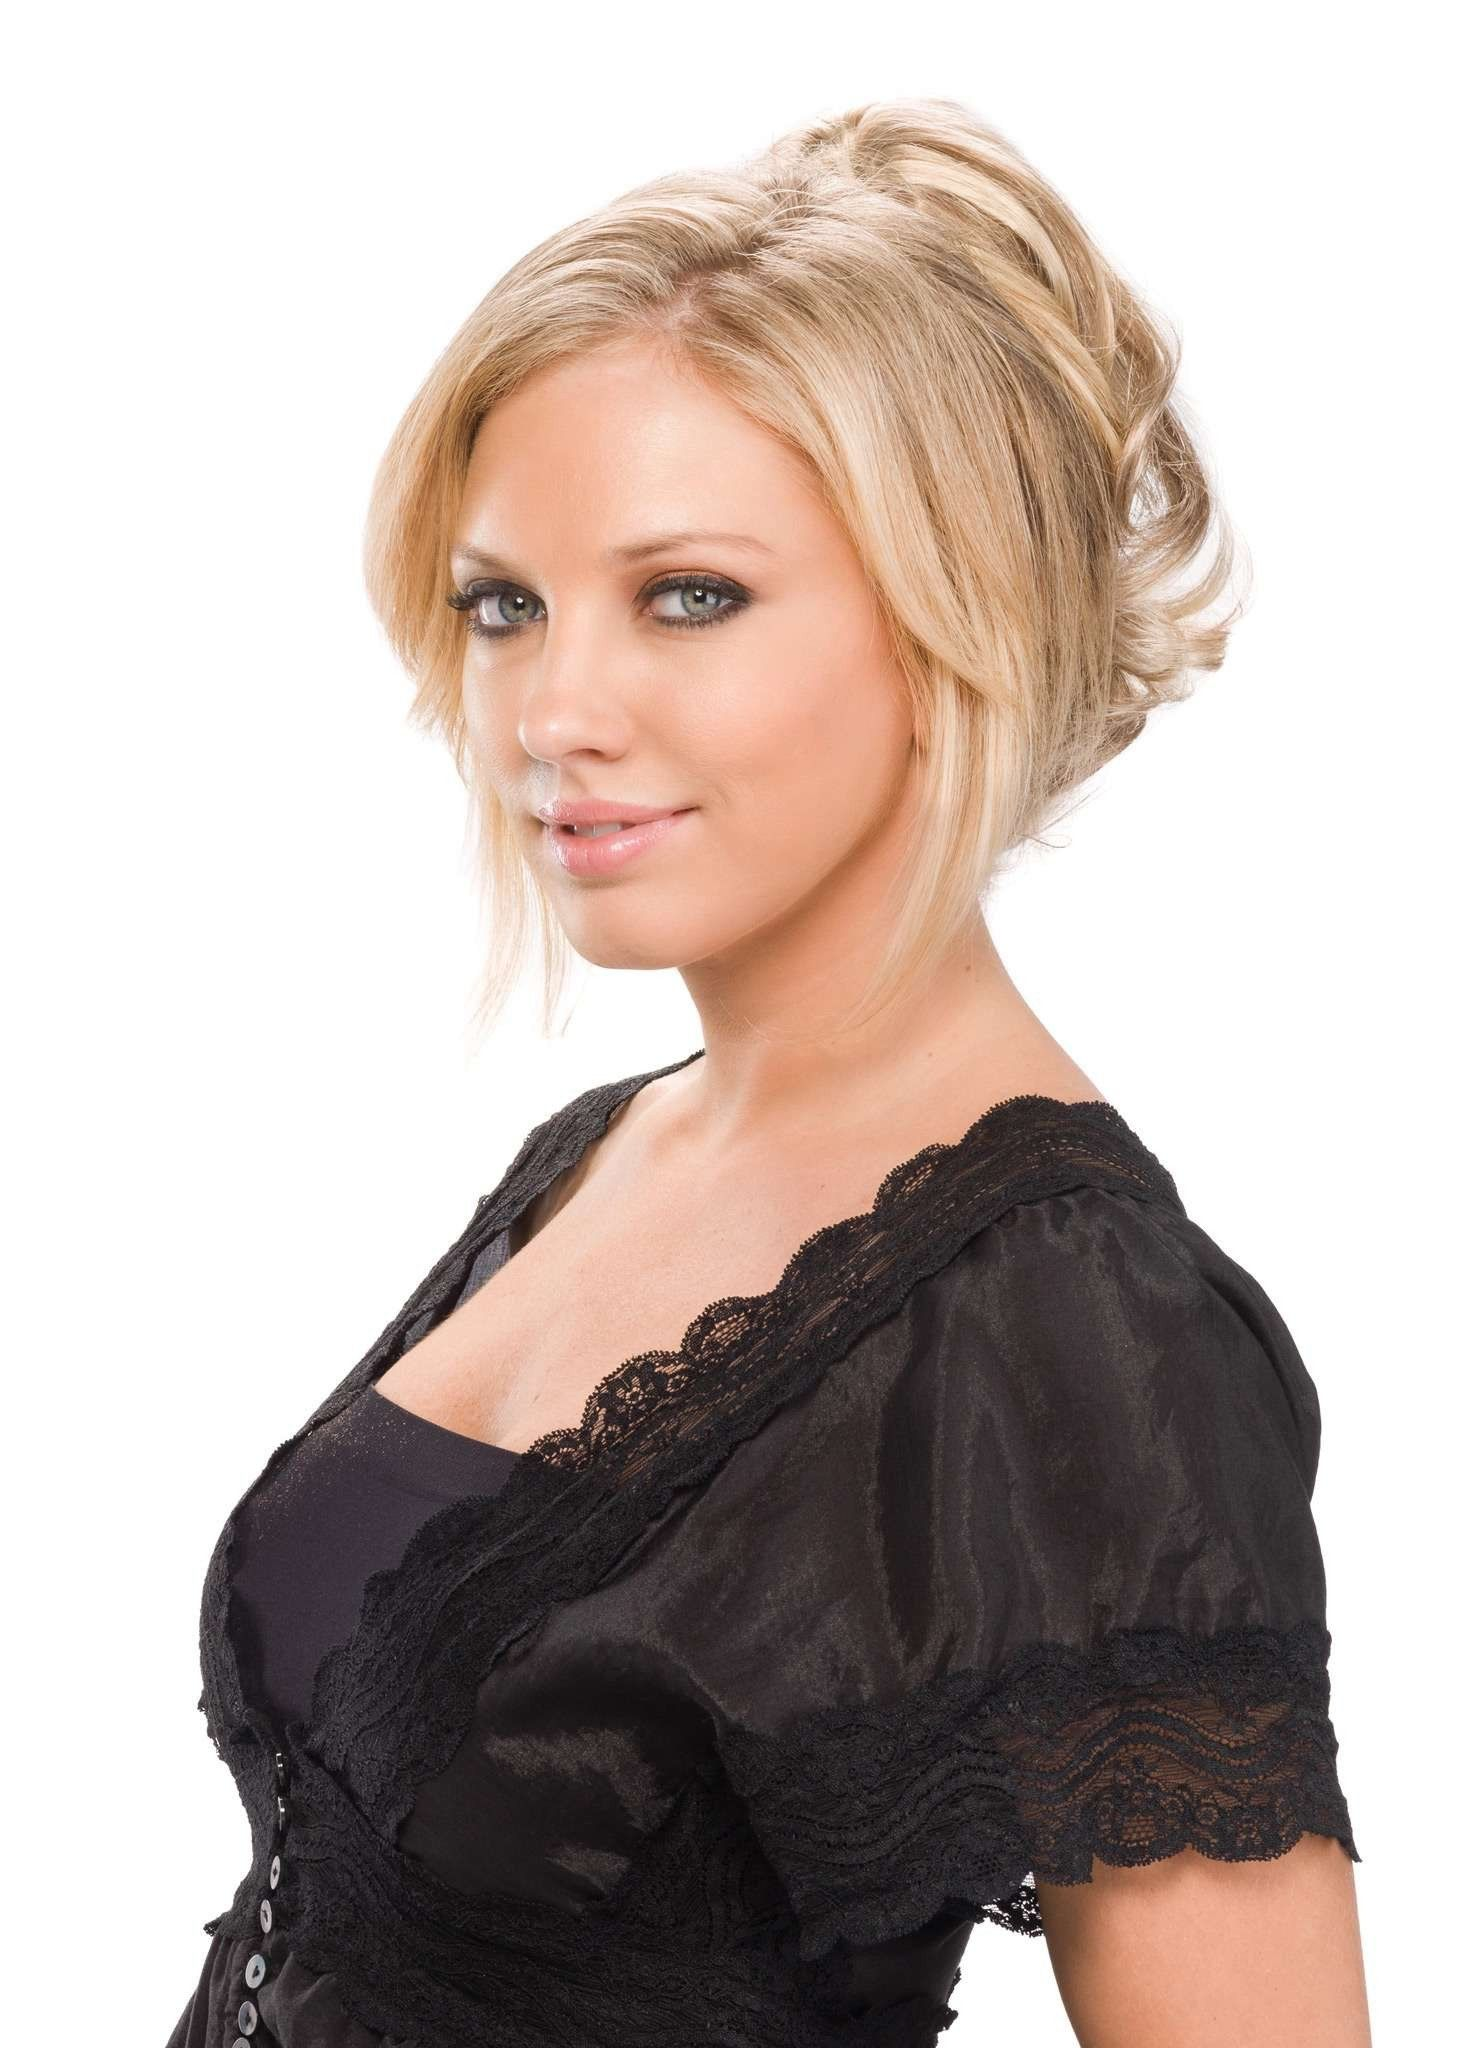 20+ Clip in ponytail hairstyles trends